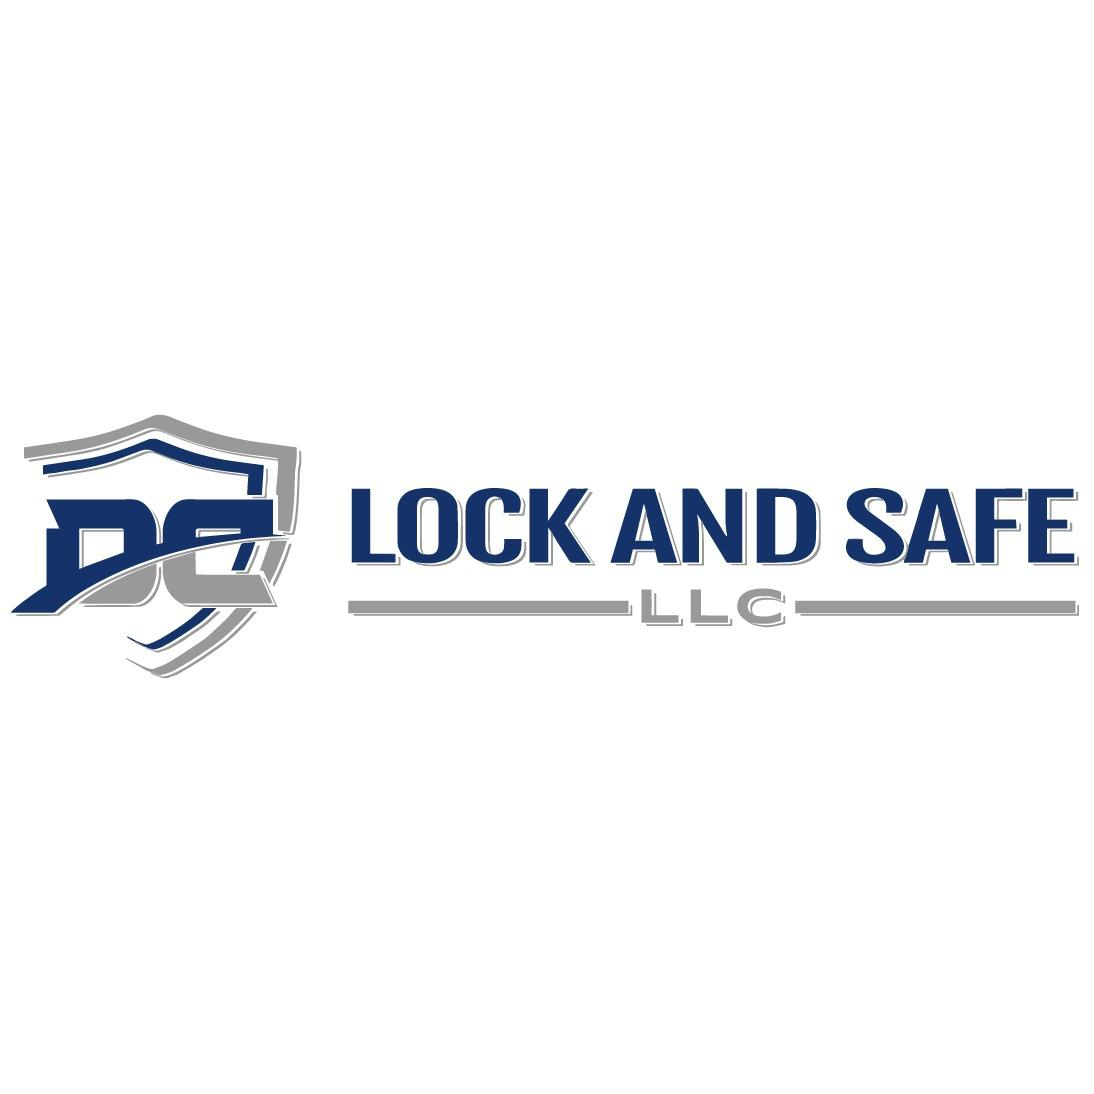 DC Lock & Safe LLC